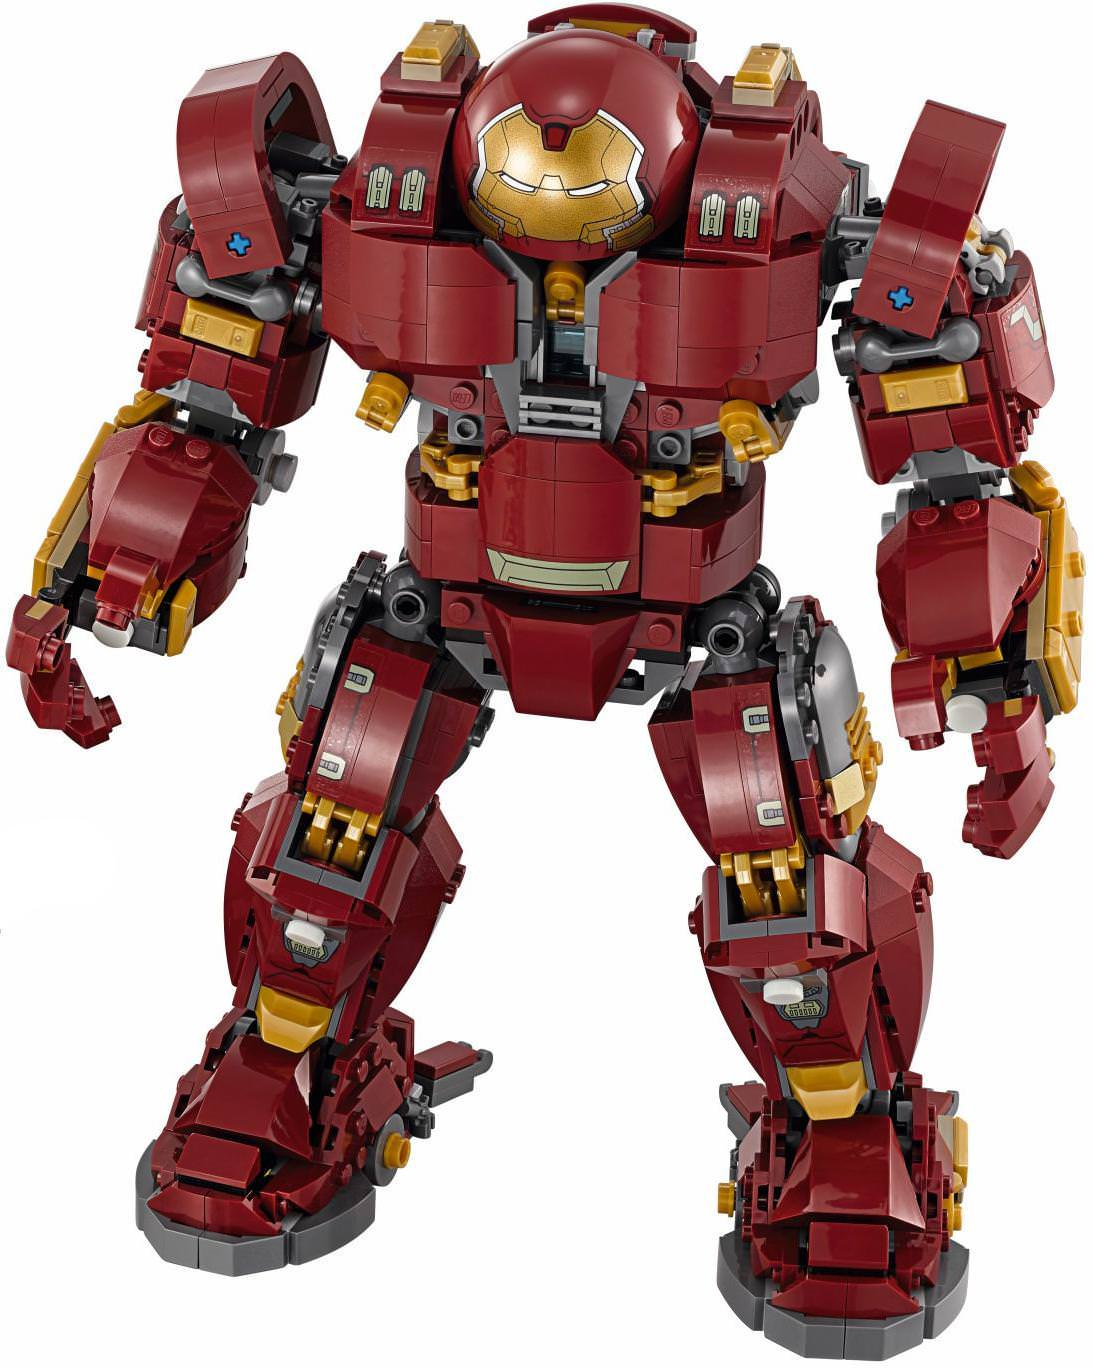 LEGO Iron Man Mark 44 Hulkbuster Suit with Head Armor Figure